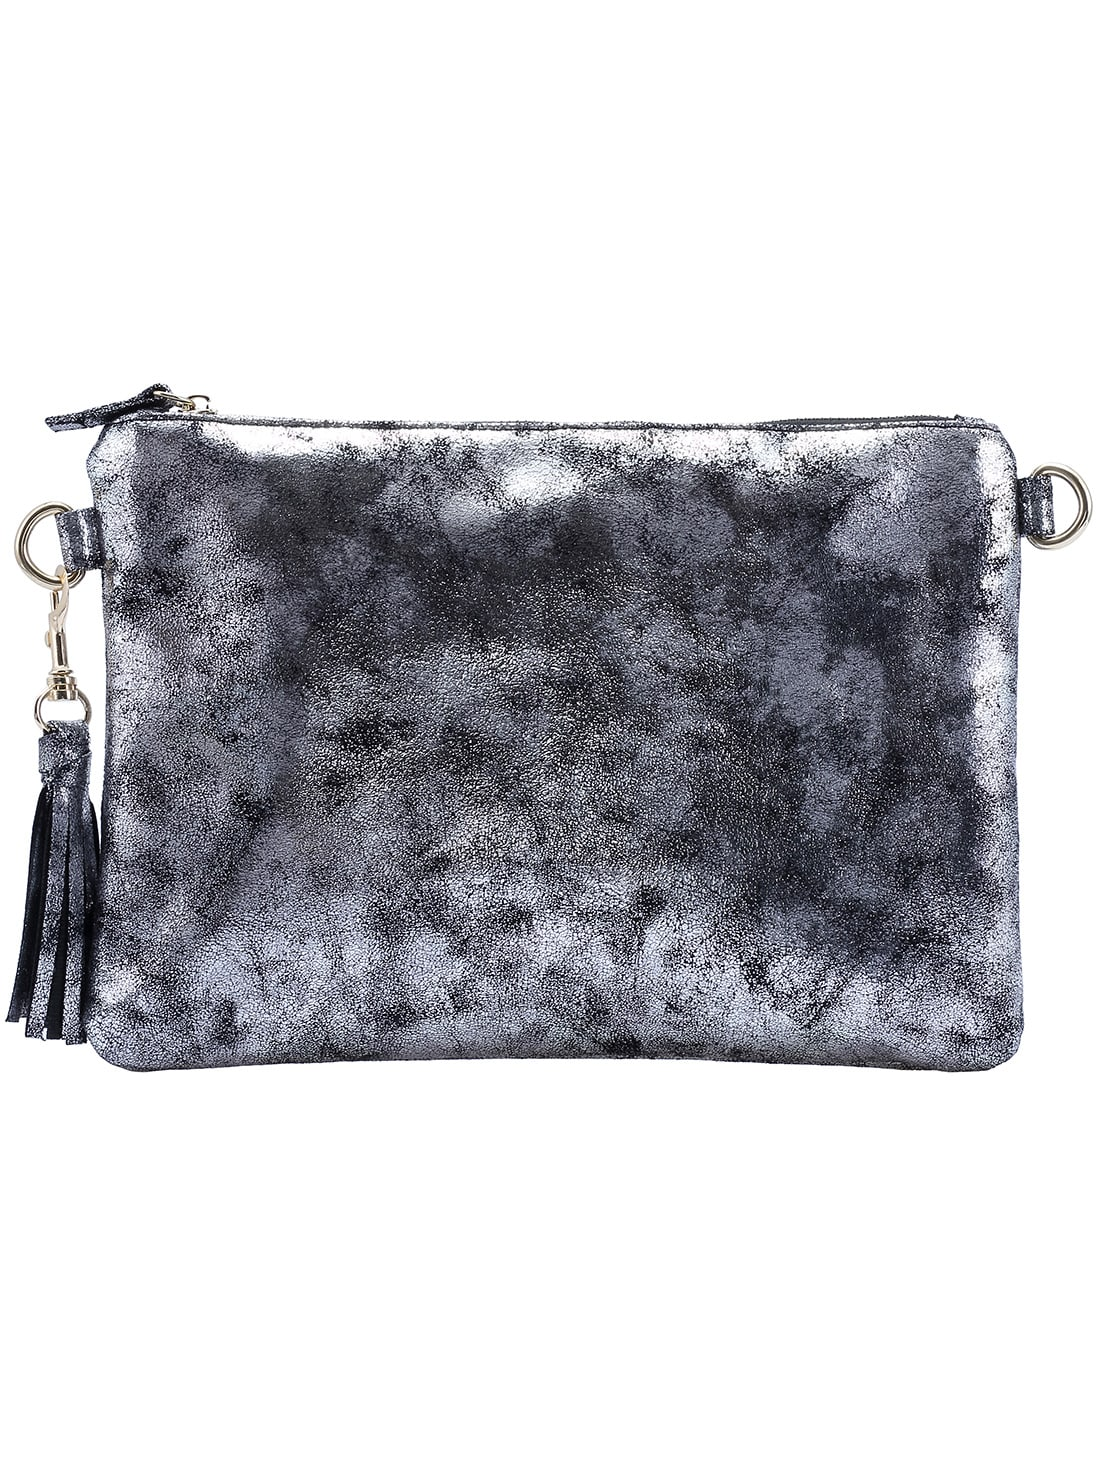 Grey Zipper Clutch Bag